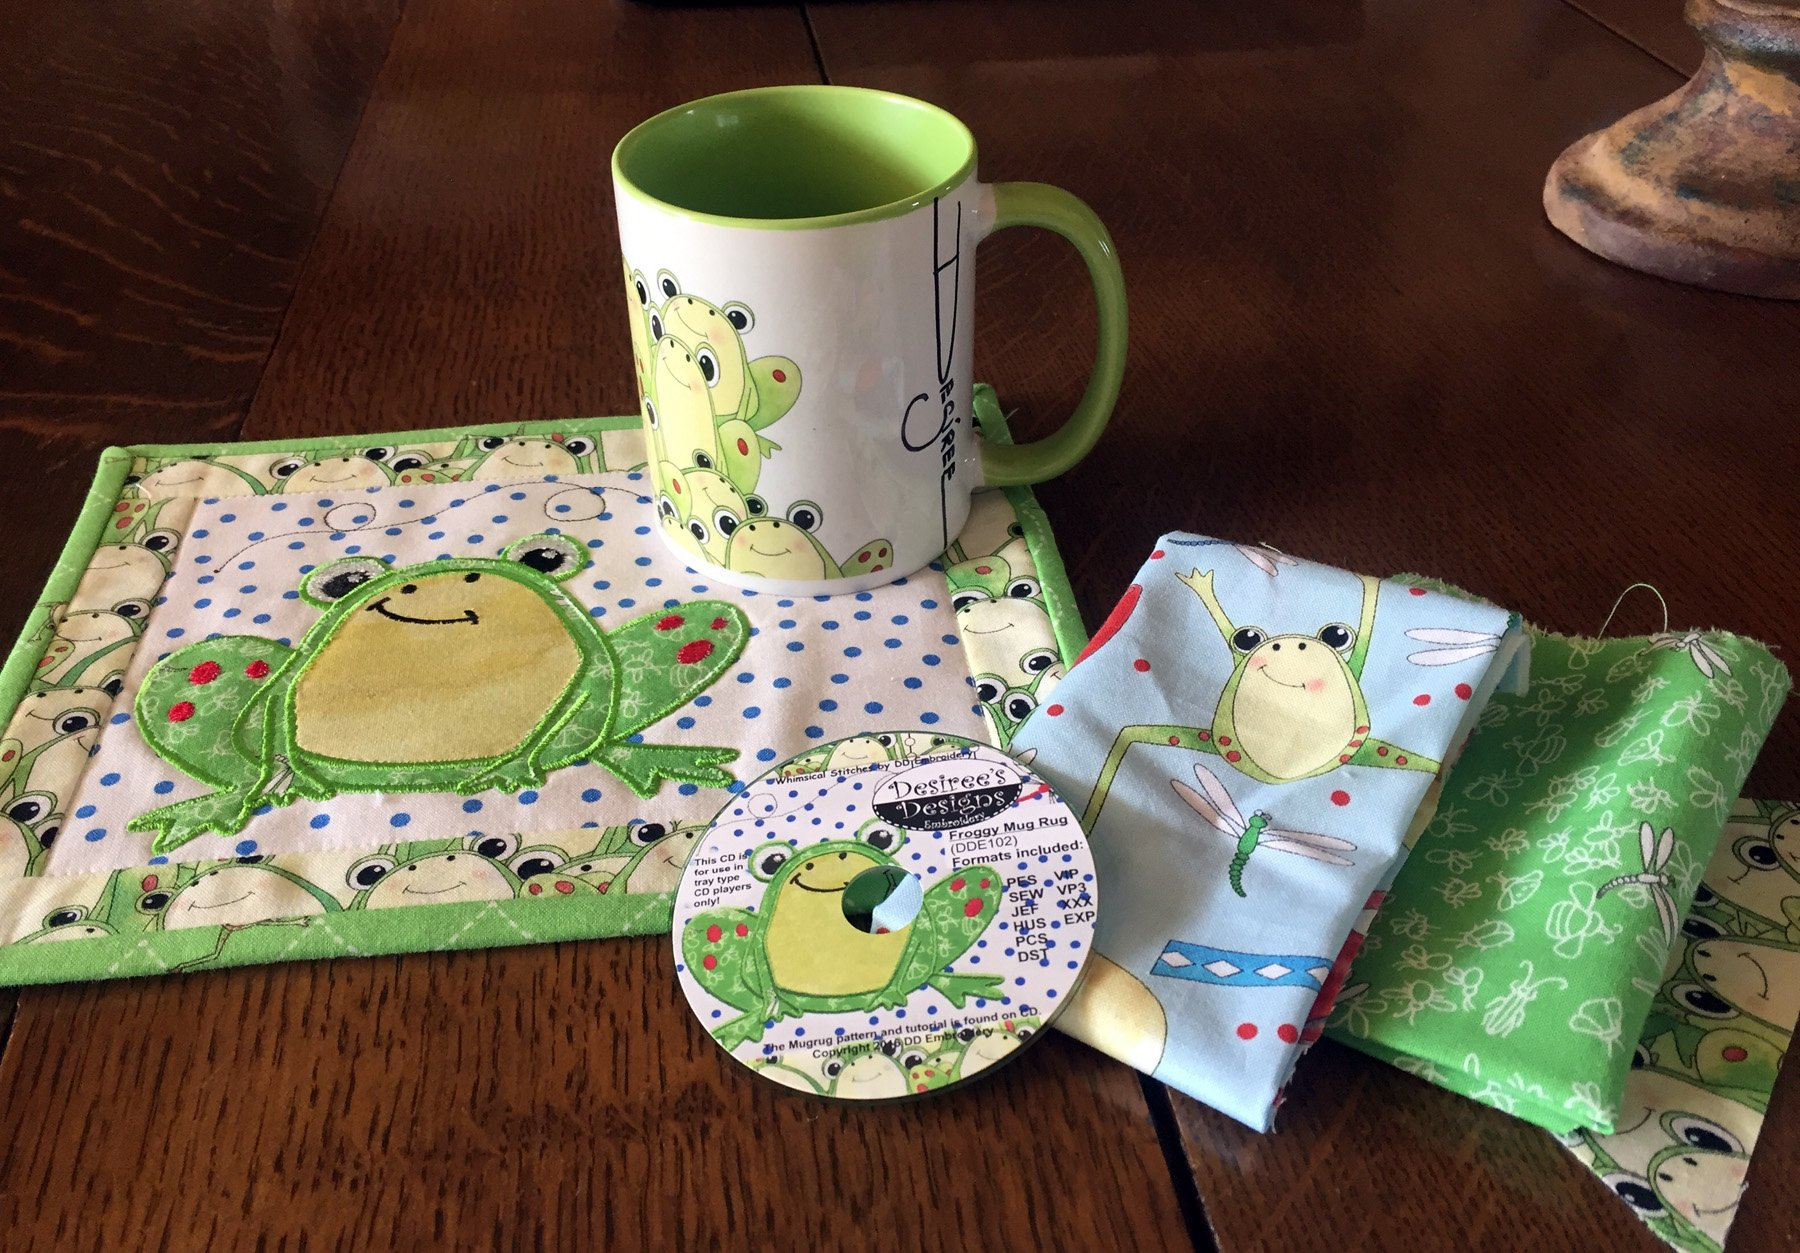 Limited Edition Tasty Tidbits Frog Mug Rug Embroidery CD with matching Coffee Mug Kit